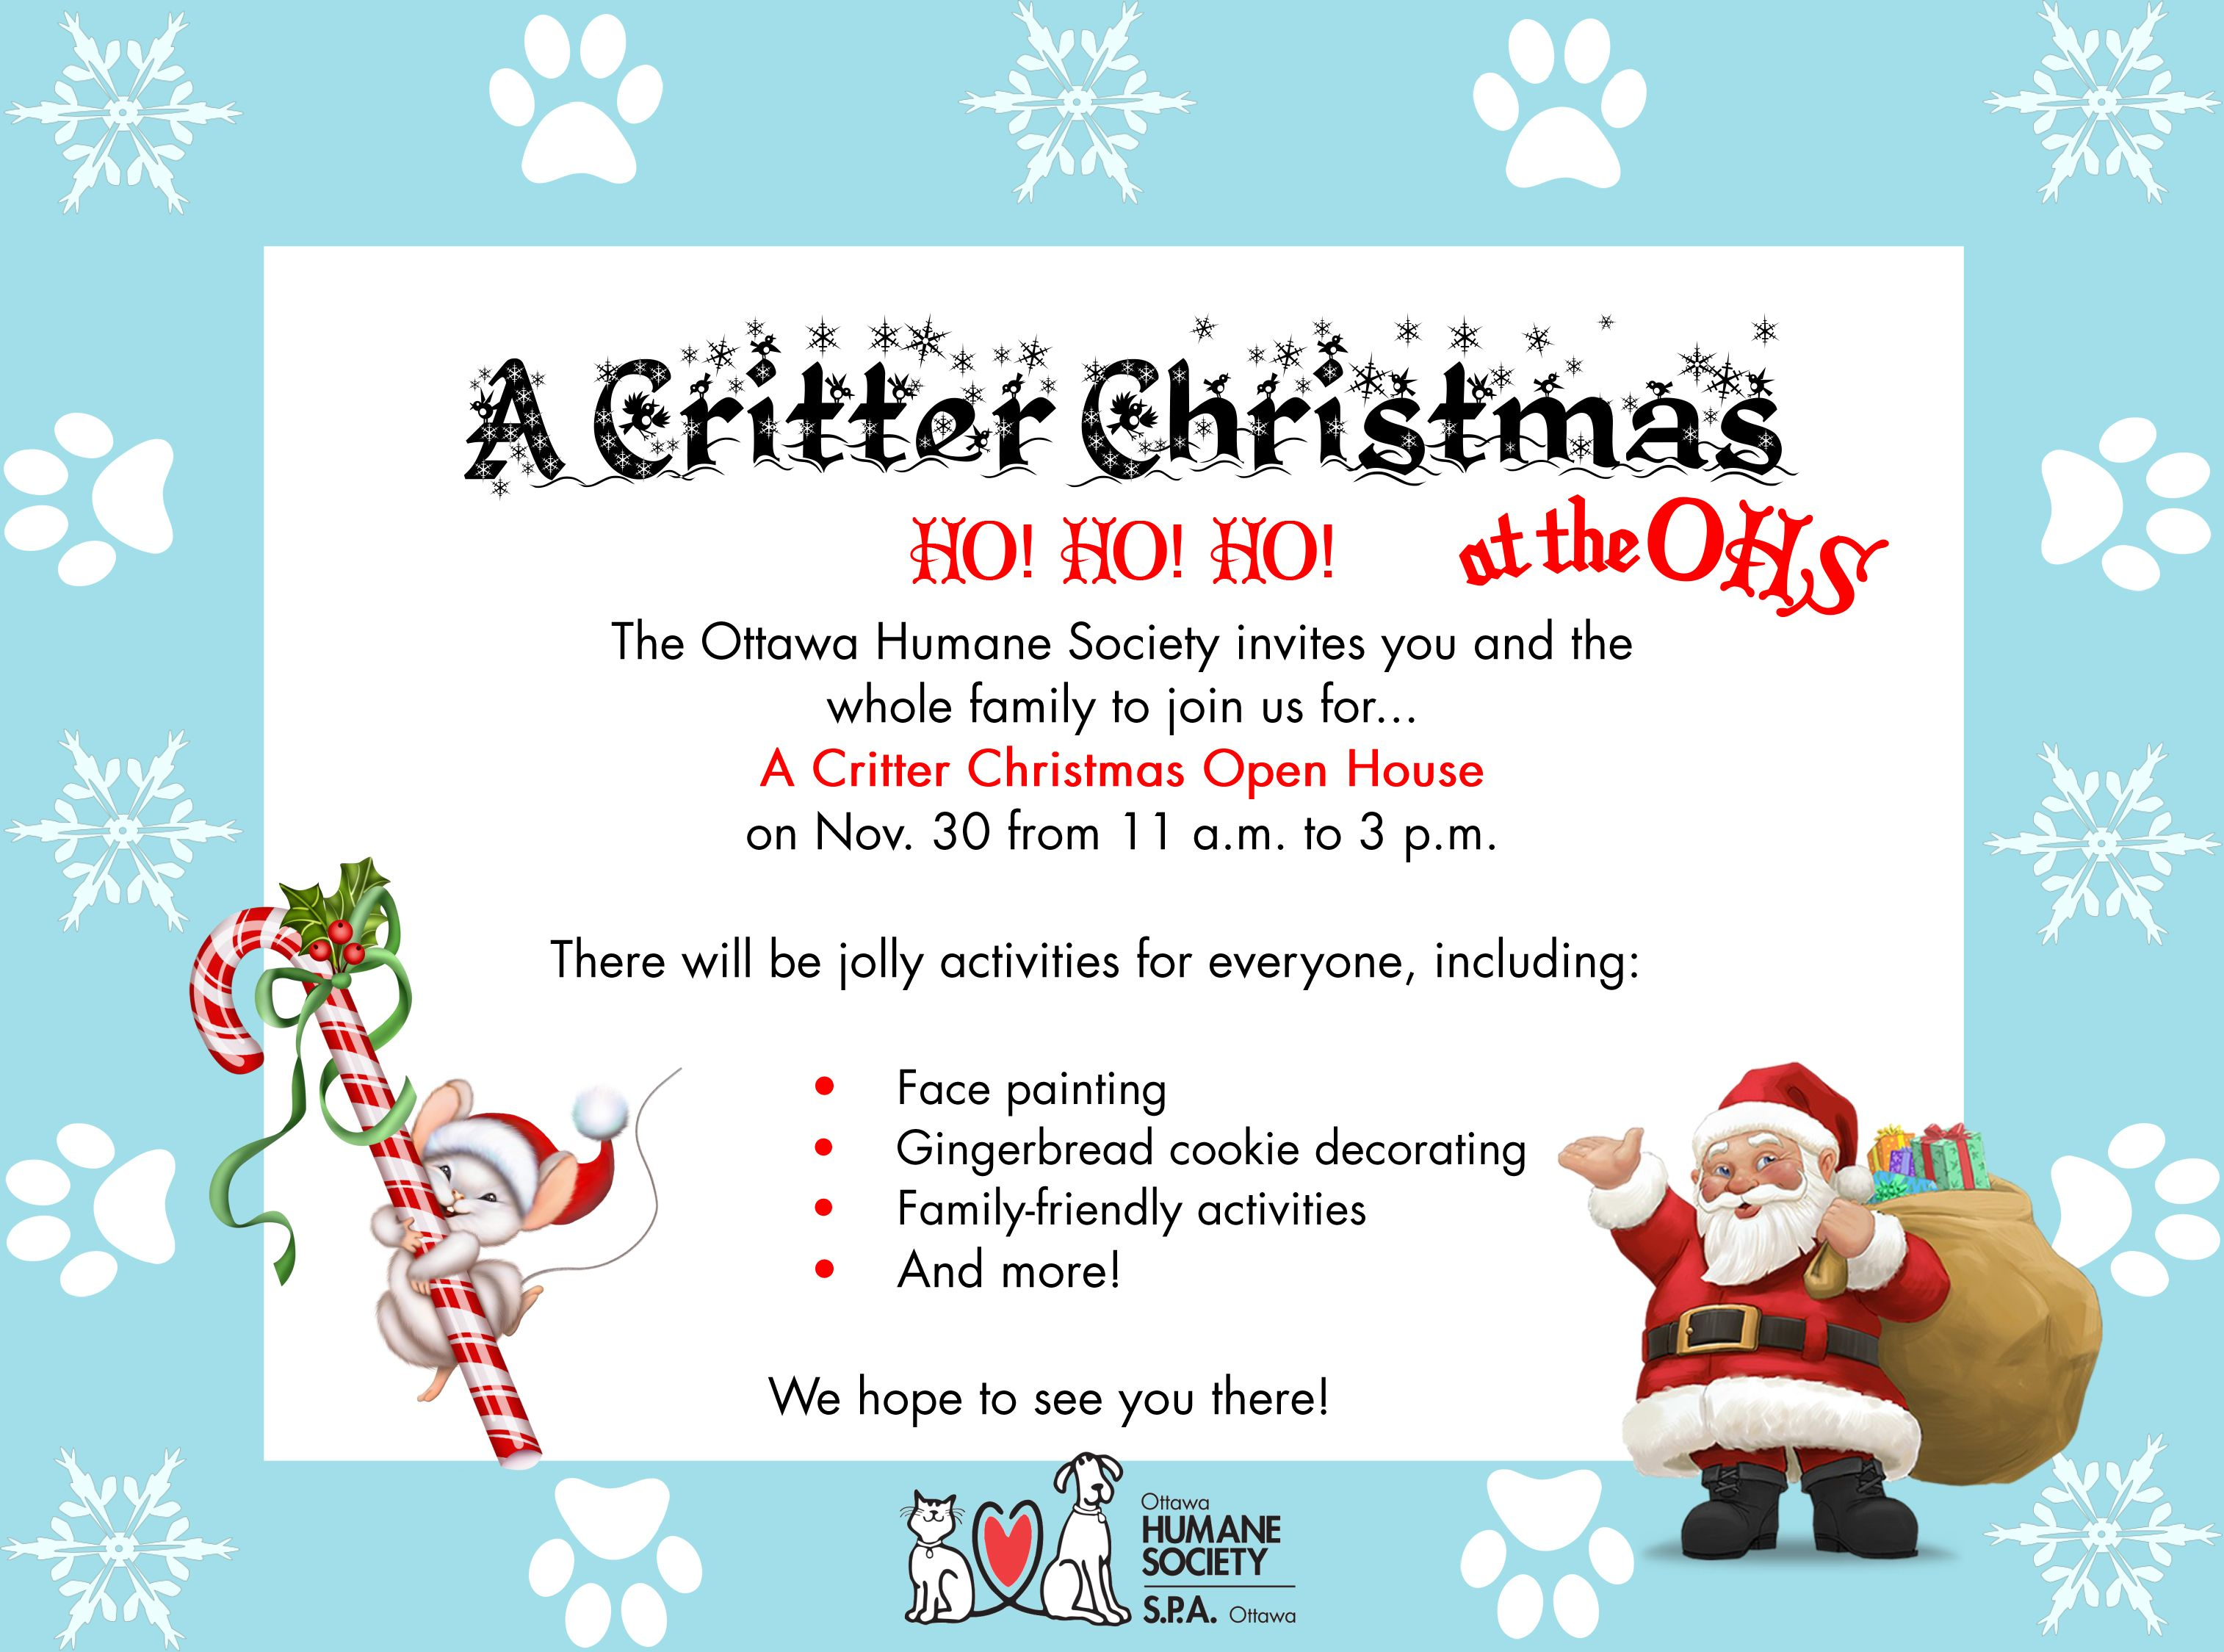 Critter Christmas at the OHS